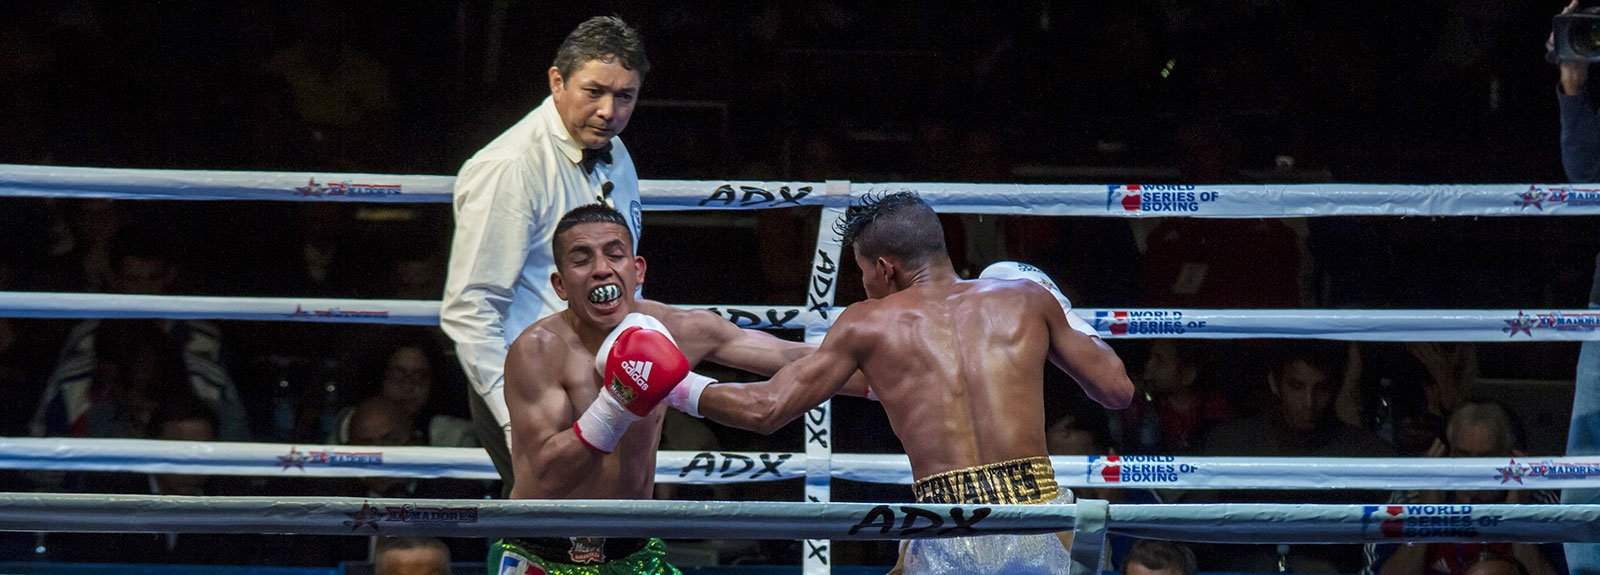 Boxing in Ciudad deportiva, cuban boxer punching in the face to a mexican